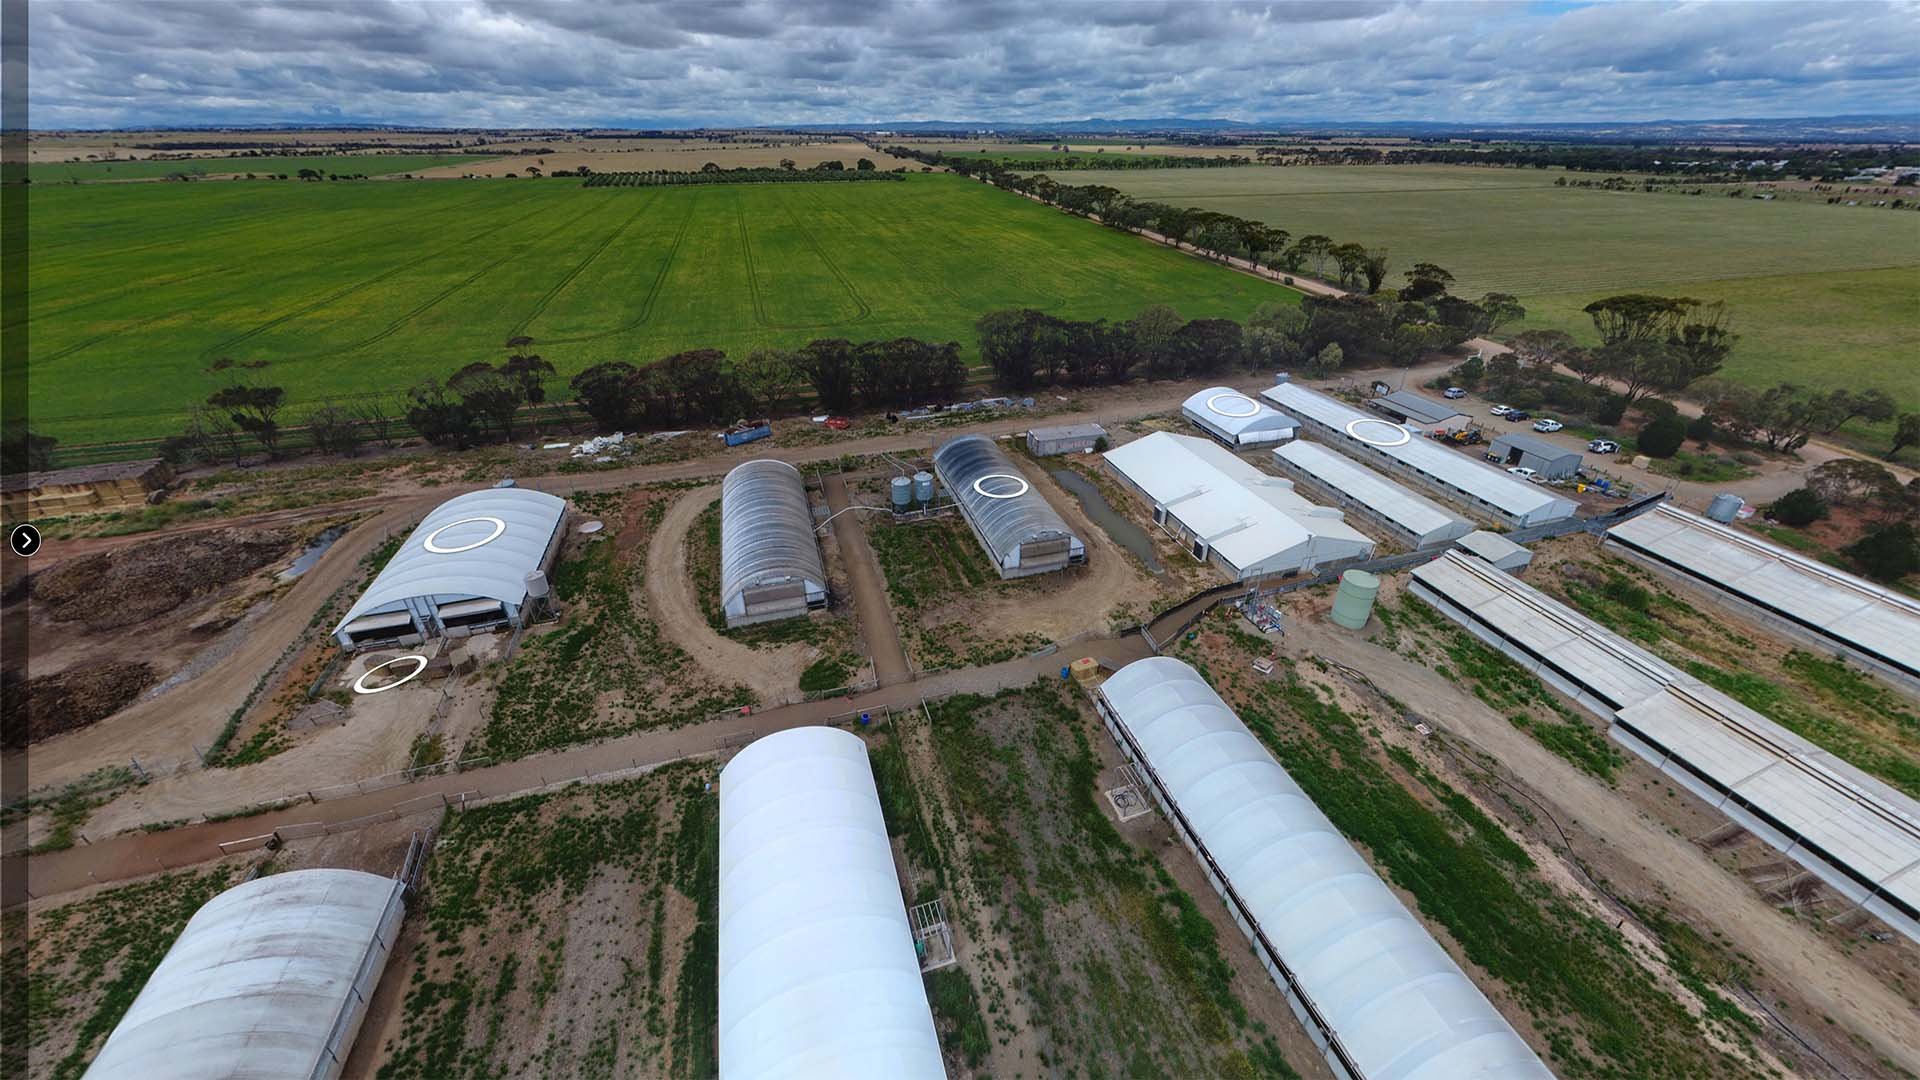 University of Adelaide Piggery Virtual Tour drone photo